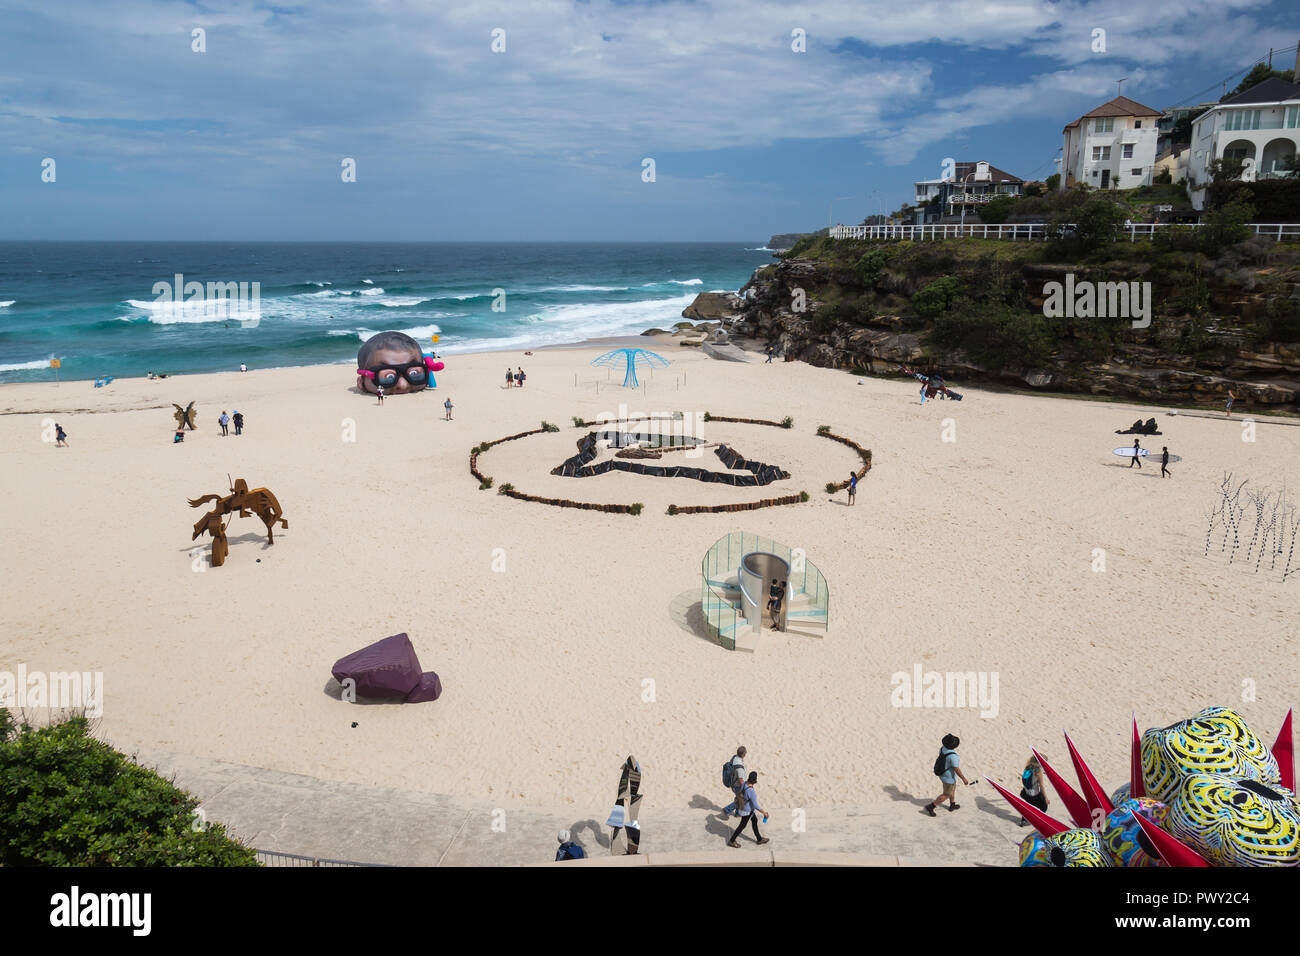 Tamarama Beach, Sydney Australia, 18th Oct 2018 Sculpture by the Sea, Tamarama Beach,the world's largest annual, free-to-the-public, outdoor sculpture exhibition, had its media launch  in Tamarama Beach Park today.  At the launch, the recipient of the Aqualand Sculpture Award, which has increased to $70,000 this year will be announced.  The launch will provide a first look at Credit: Paul Lovelace/Alamy Live News - Stock Image